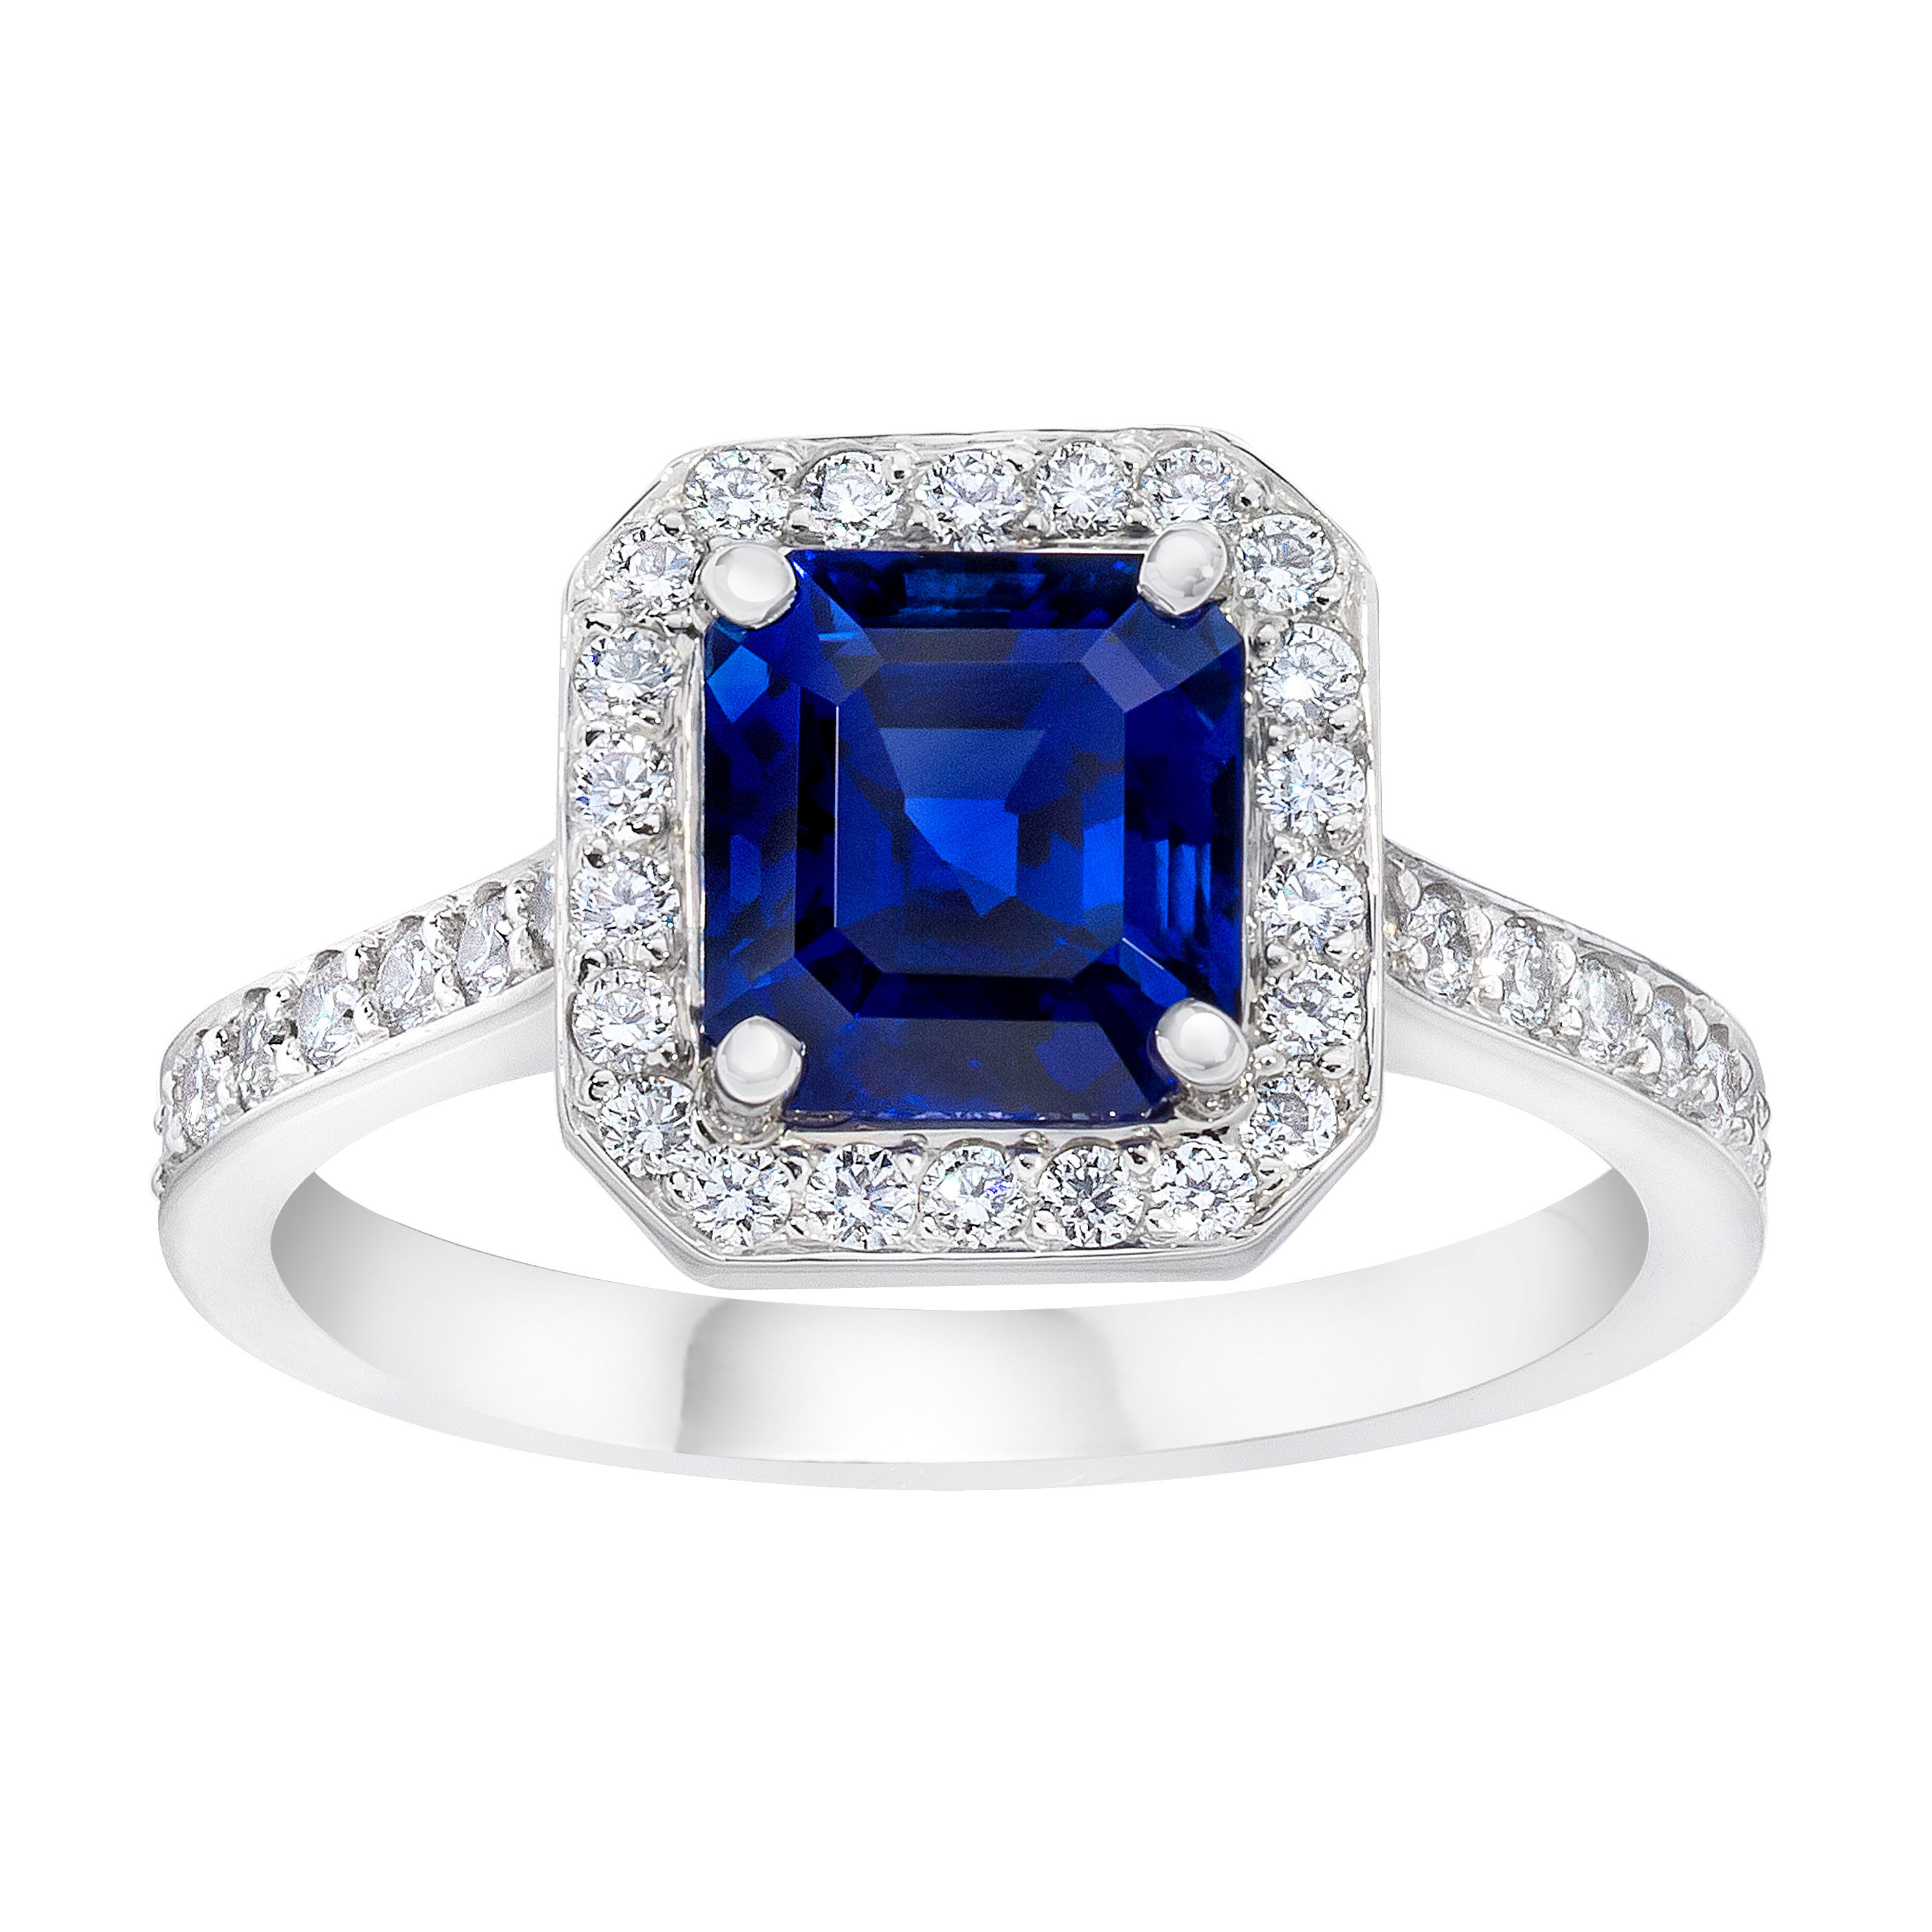 Sapphire Halo Ring – Rings – Fine Jewelry With Regard To Most Up To Date Sparkling Square Halo Rings (Gallery 11 of 25)